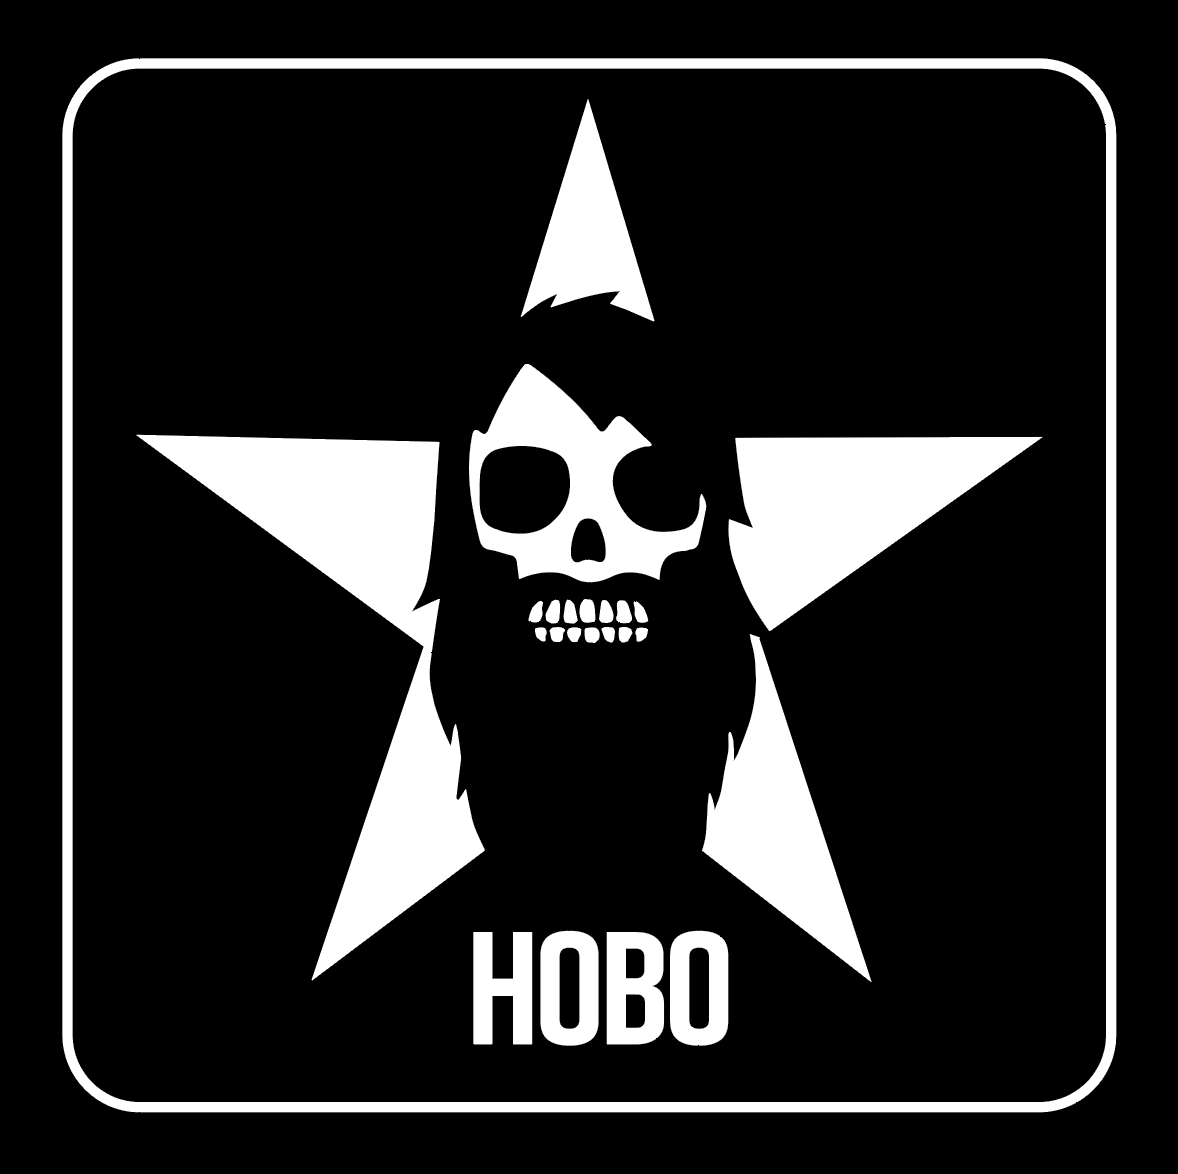 The Hobo Army